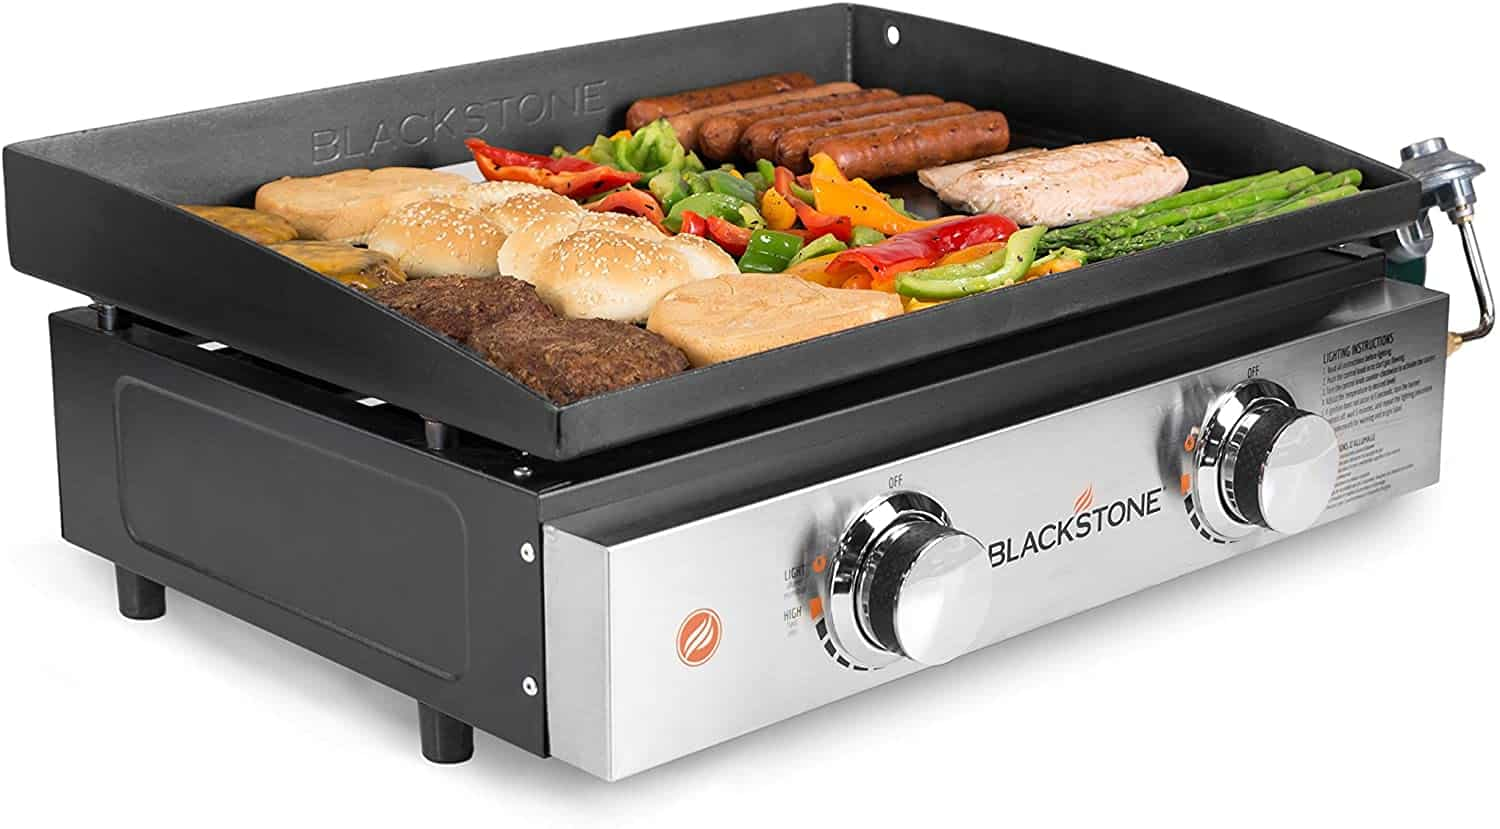 The best tabletop griddle- Blackstone Tabletop Grill 22 Inch